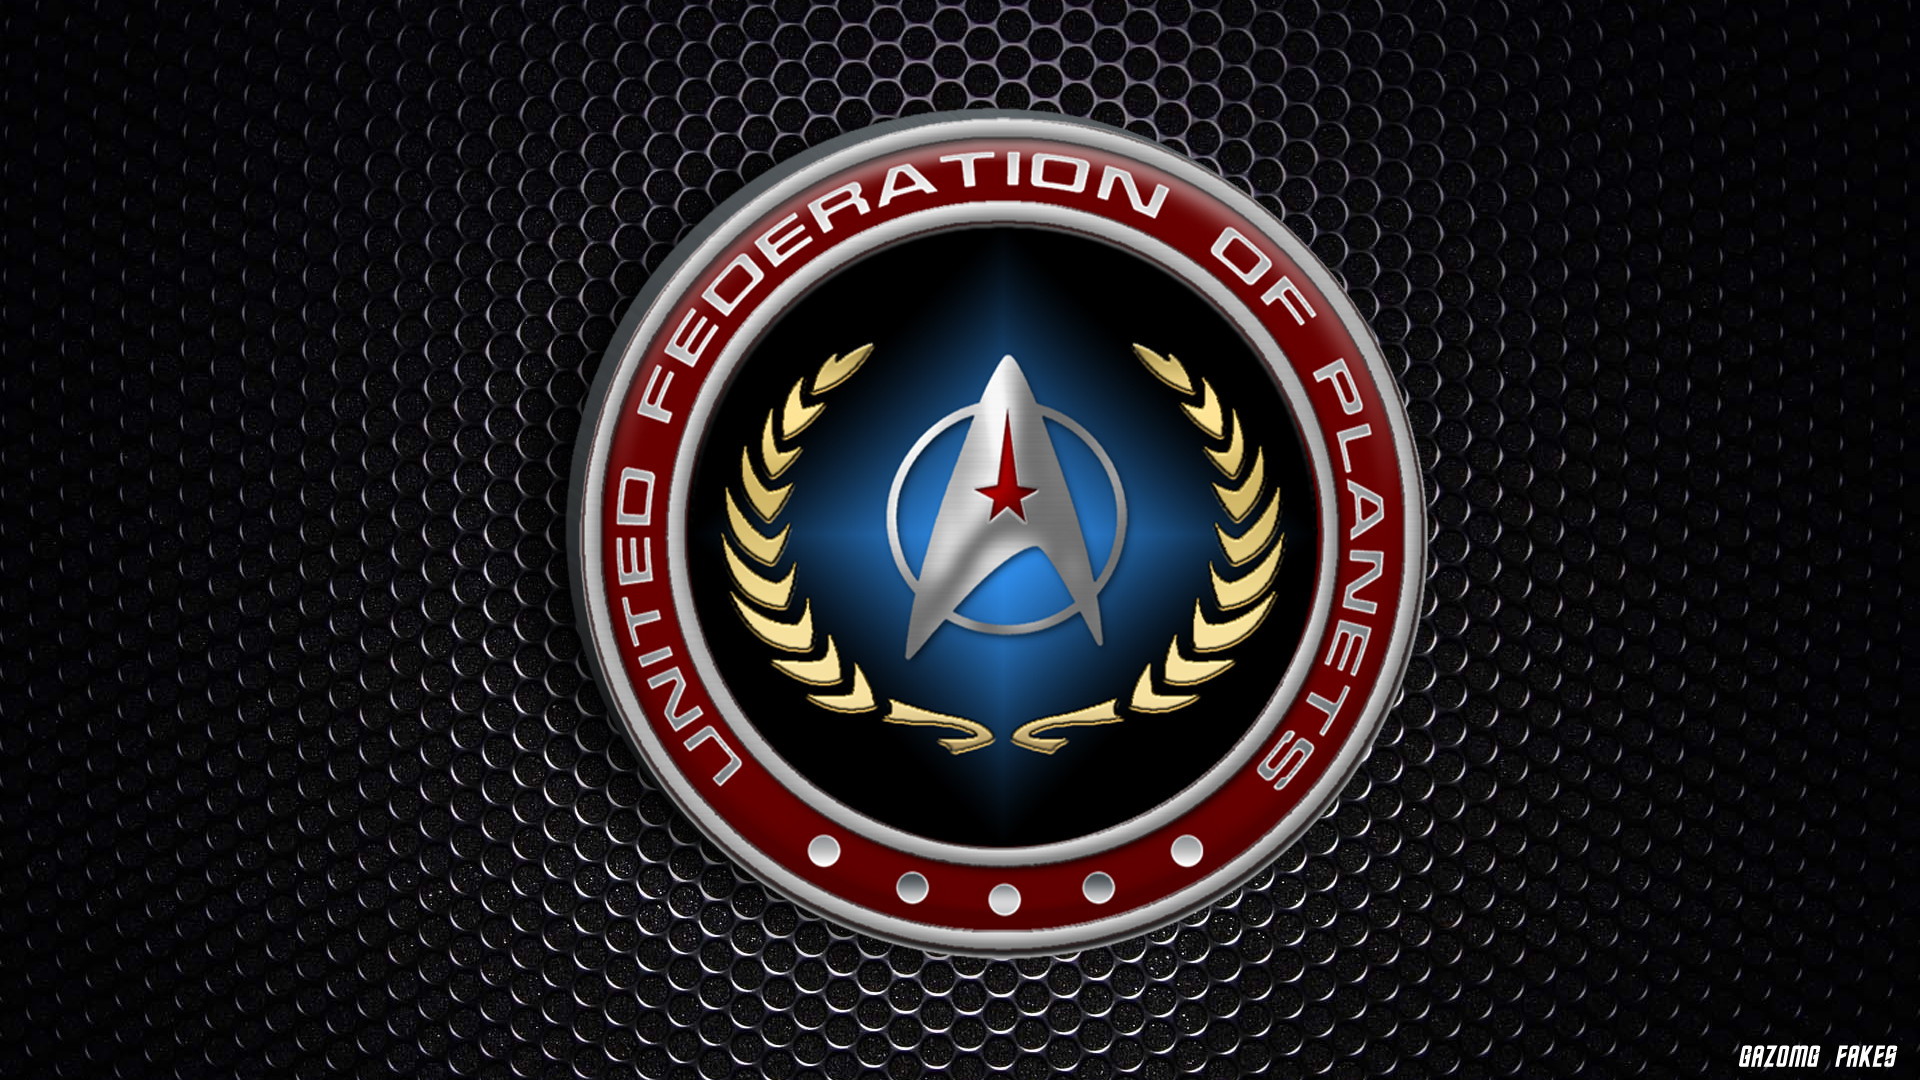 Res: 1920x1080, United Federation of Planets logo Starfleet by gazomg on .